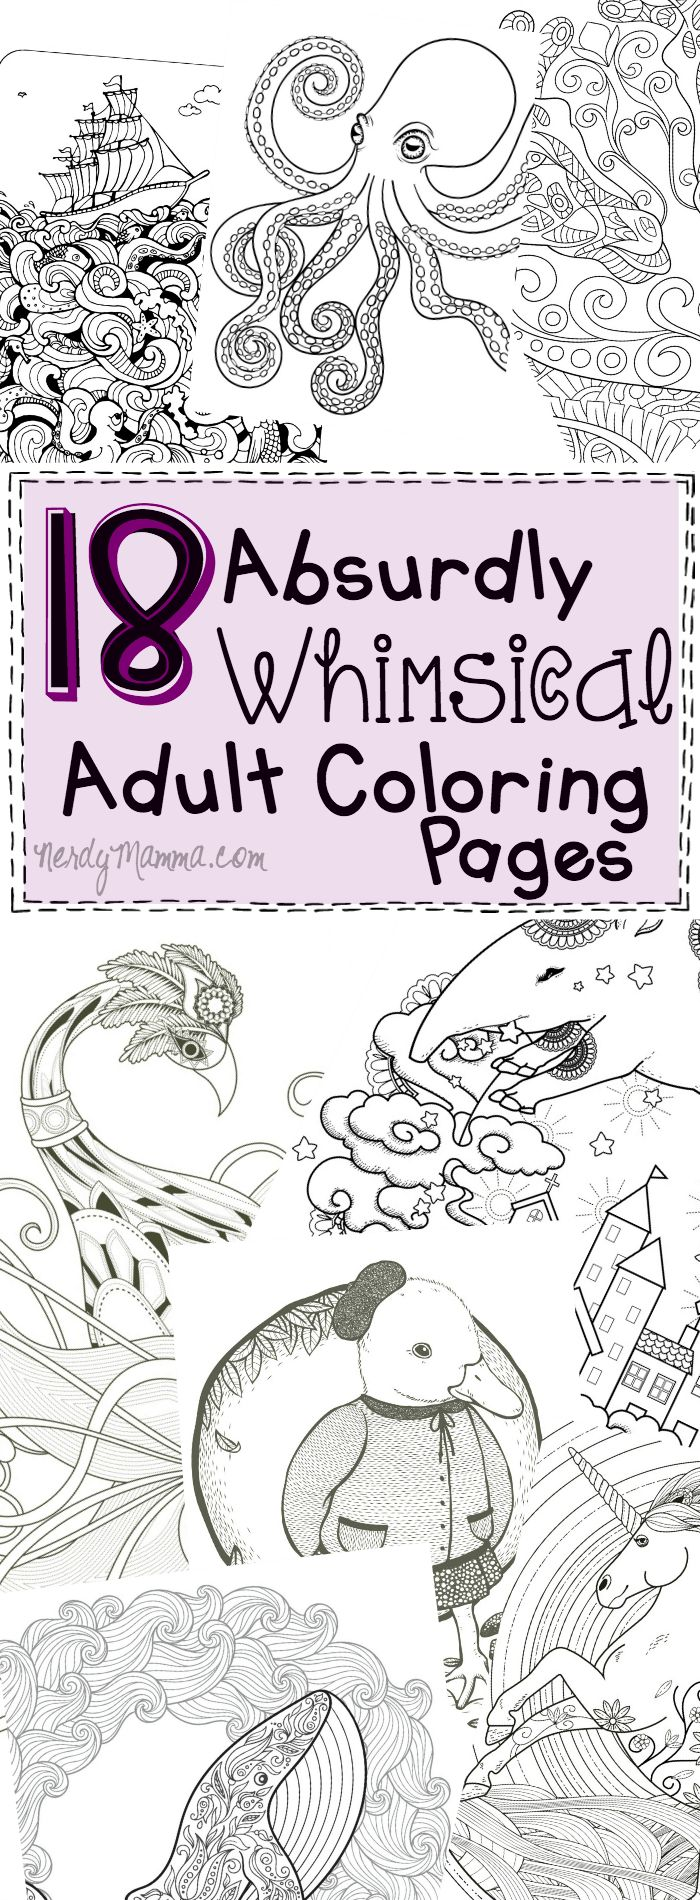 Coloring pages for donna flor - 18 Absurdly Whimsical Adult Coloring Pages